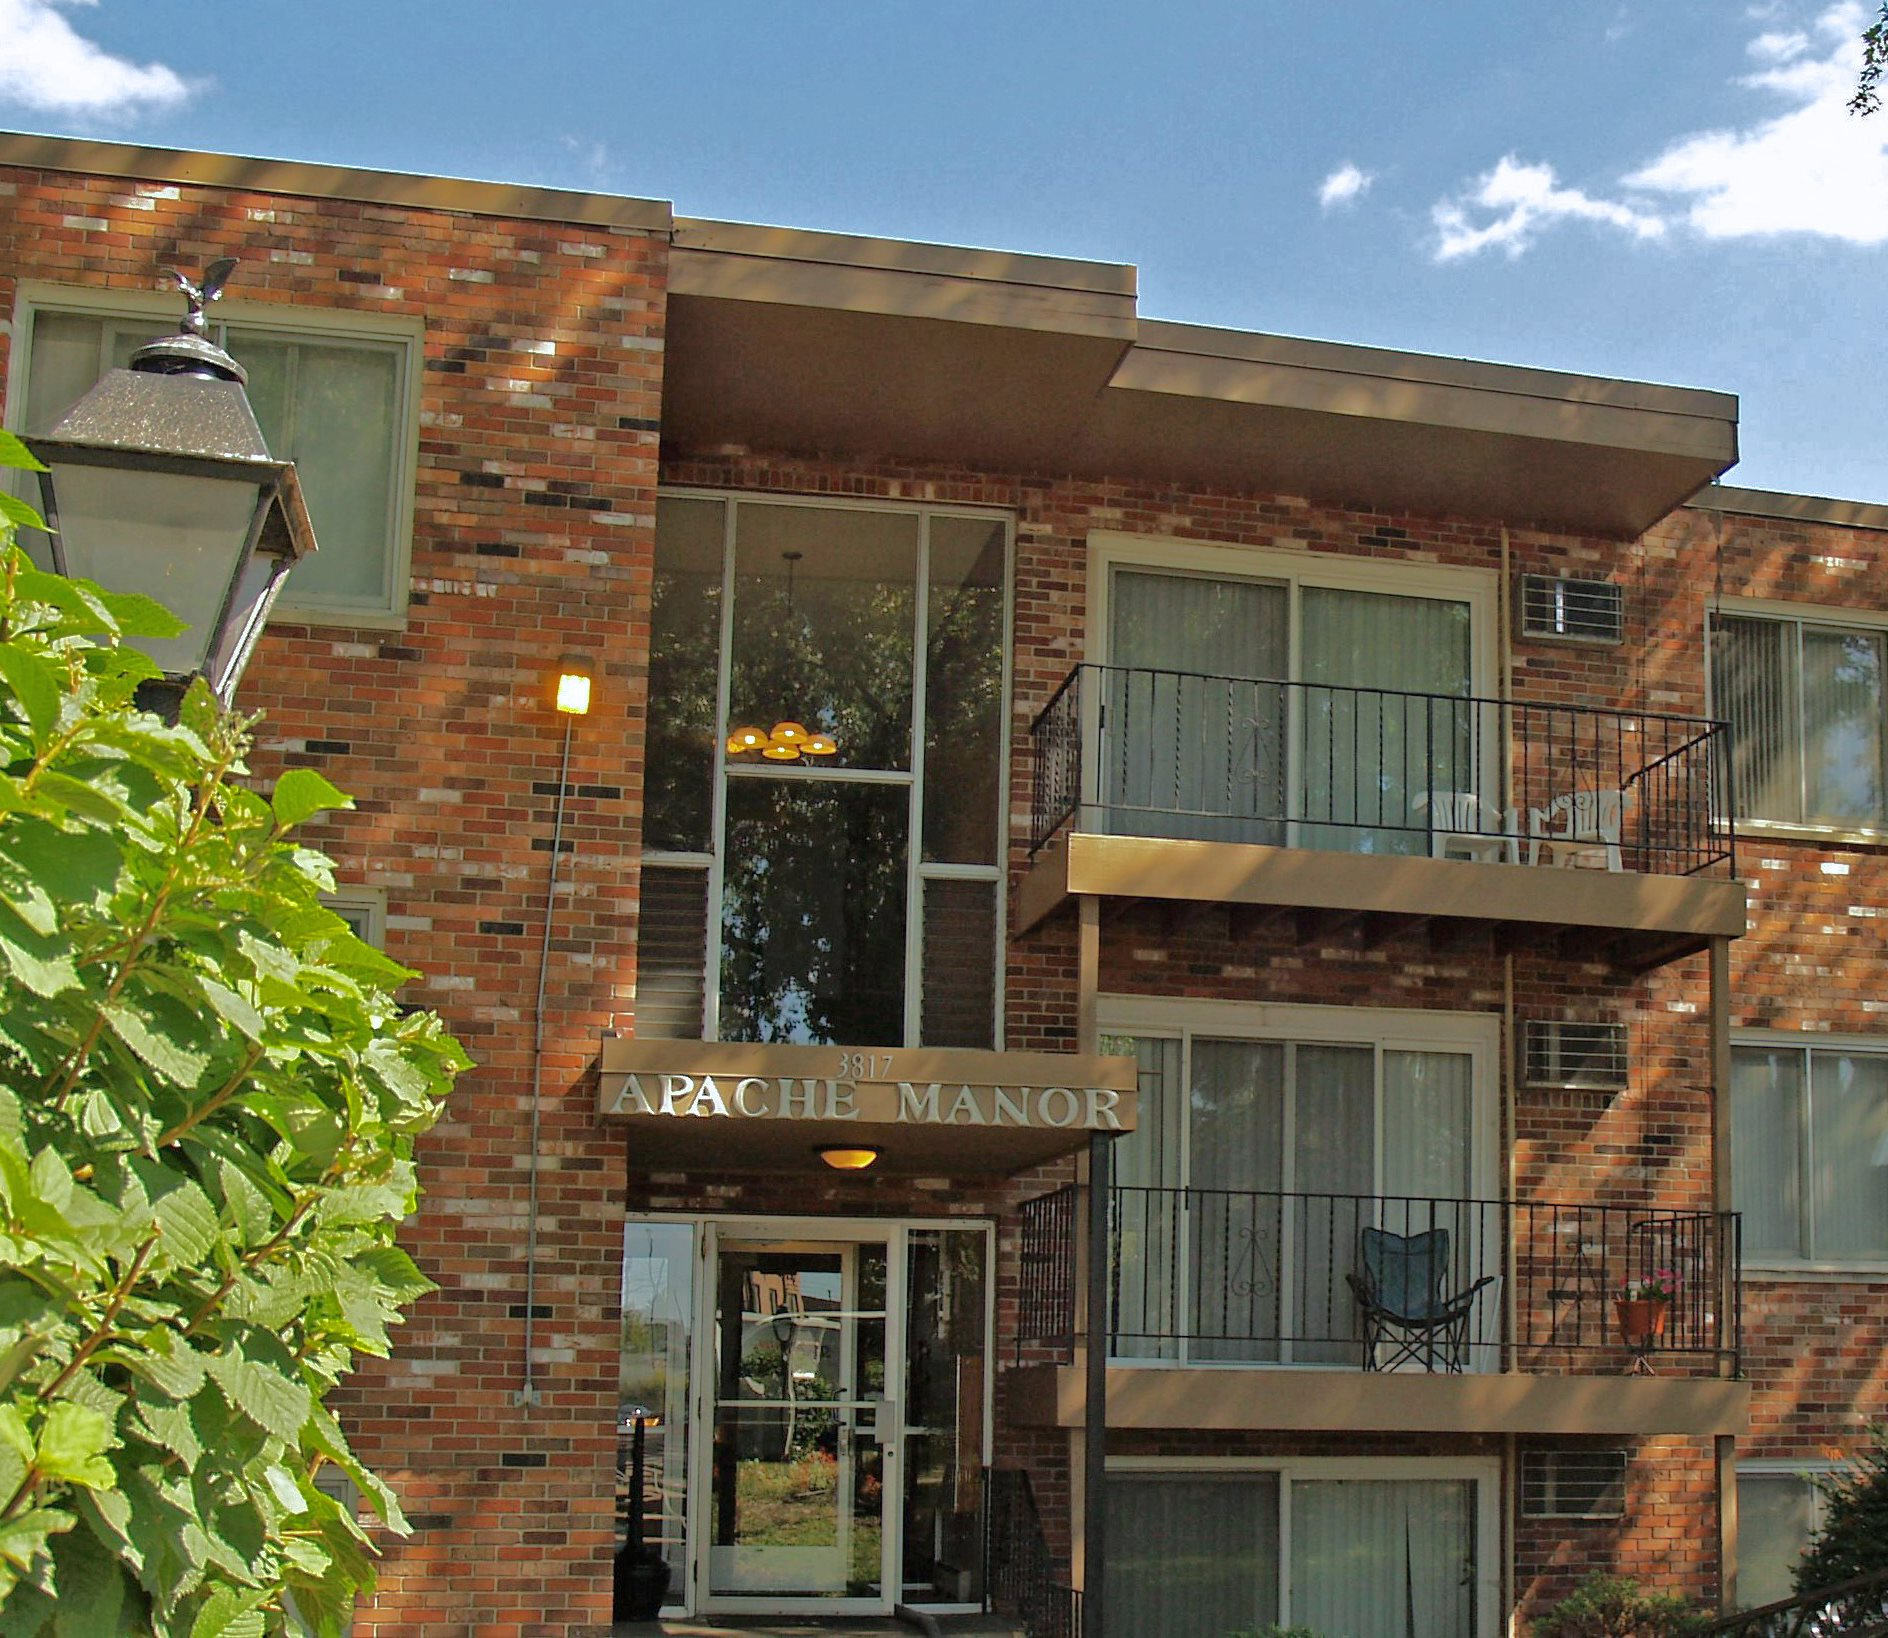 Kingswood Village Apartments: Apartments In St. Anthony, MN